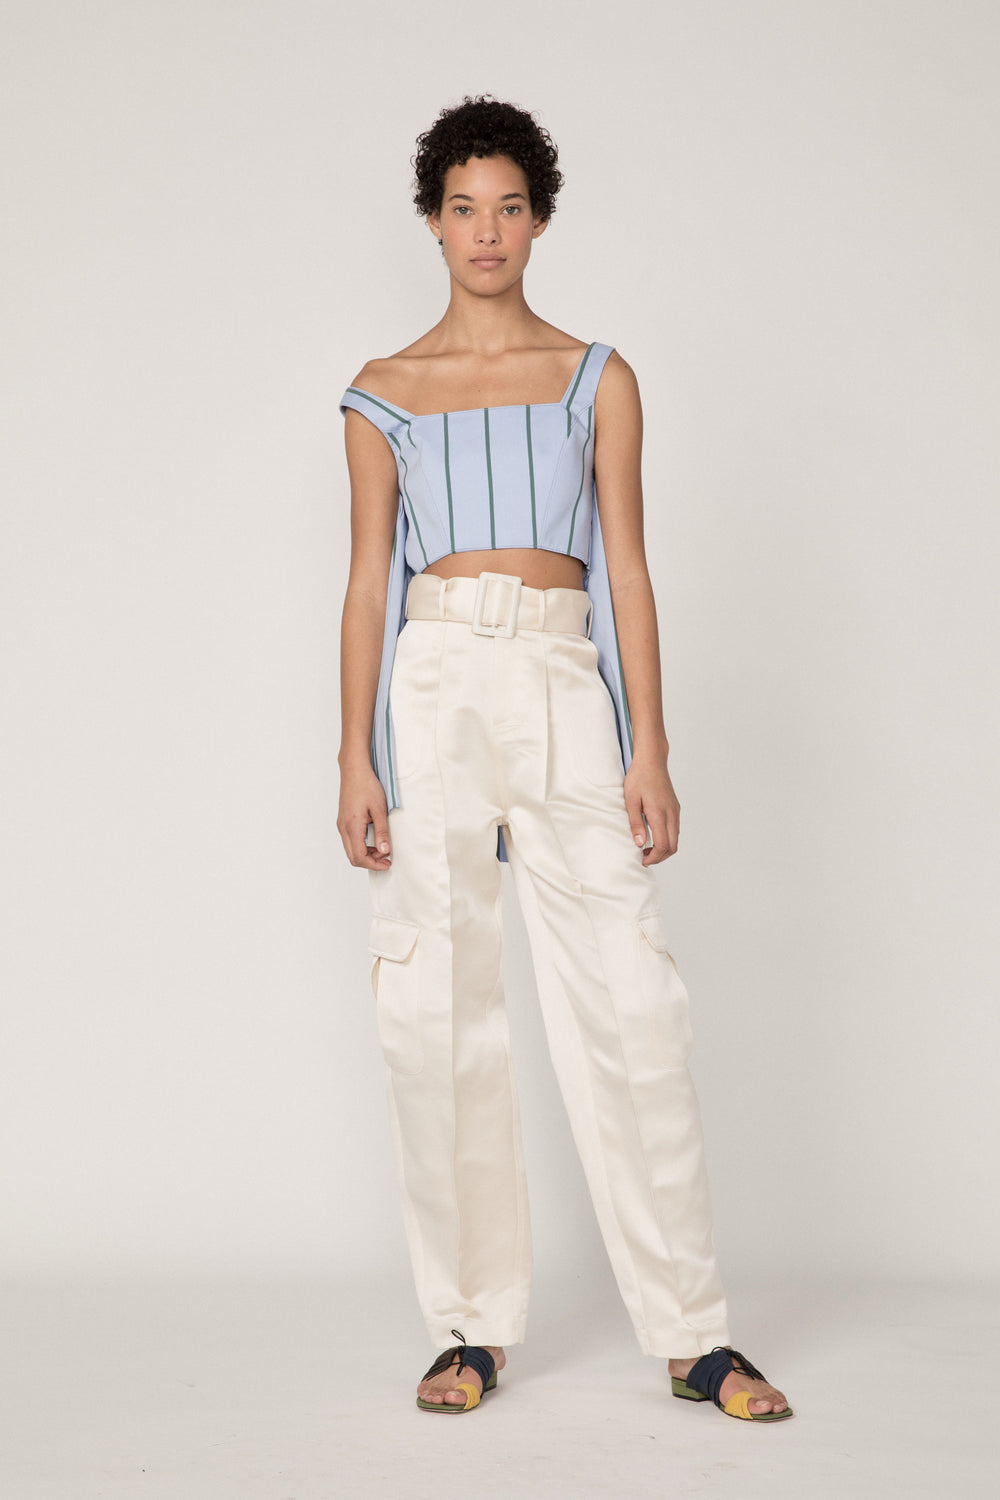 Rosie Assoulin Pre-Fall 2019 Belted Cargo Pant. High-waisted classic cargo pant. Four extra-large side pockets. Hook closures. Removable satin belt. White. 100% Silk. Sizes 0 - 12.